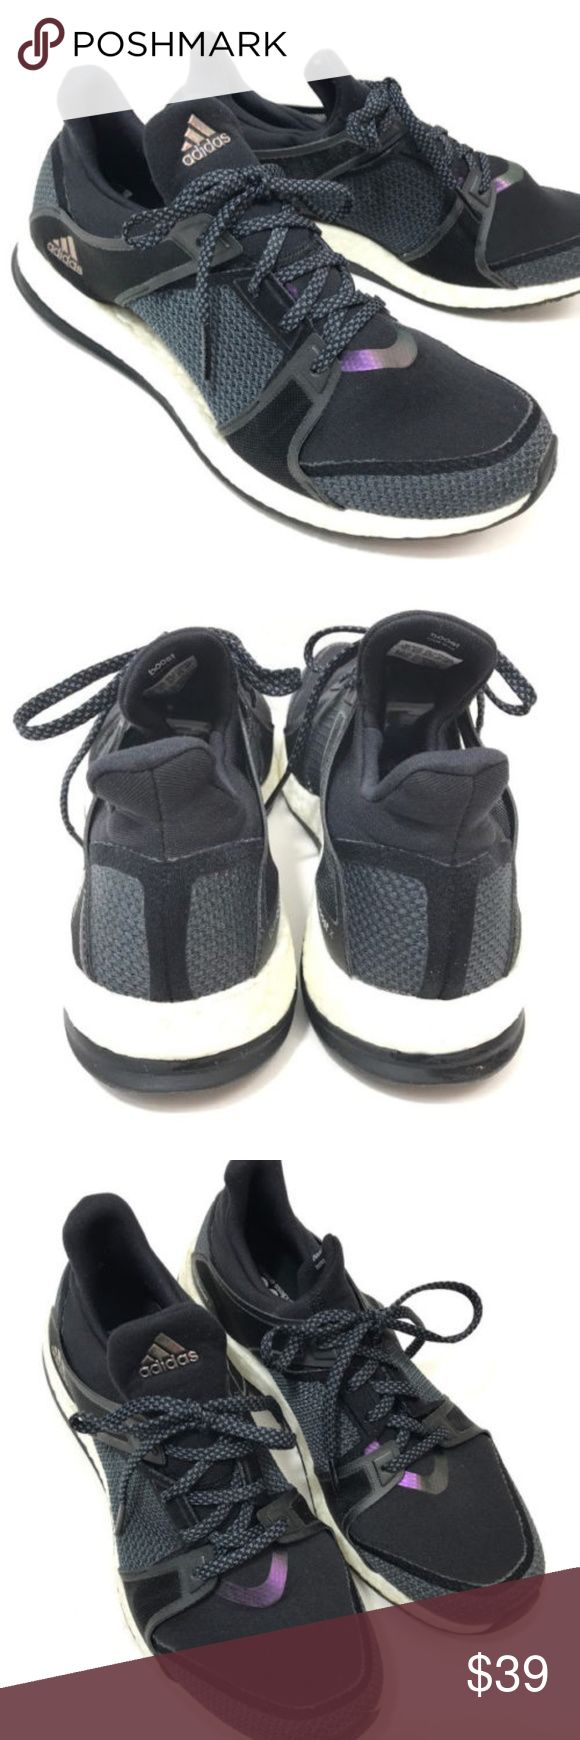 Adidas Pure Boost Training Shoes Sz 10 Black Gray Adidas Pure Boost Training Shoes  Women's US Size 10 M Black lace up style Running / athletic sneakers  Very good pre-owned condition showing light signs of wear, please review pictures for details adidas Shoes Athletic Shoes